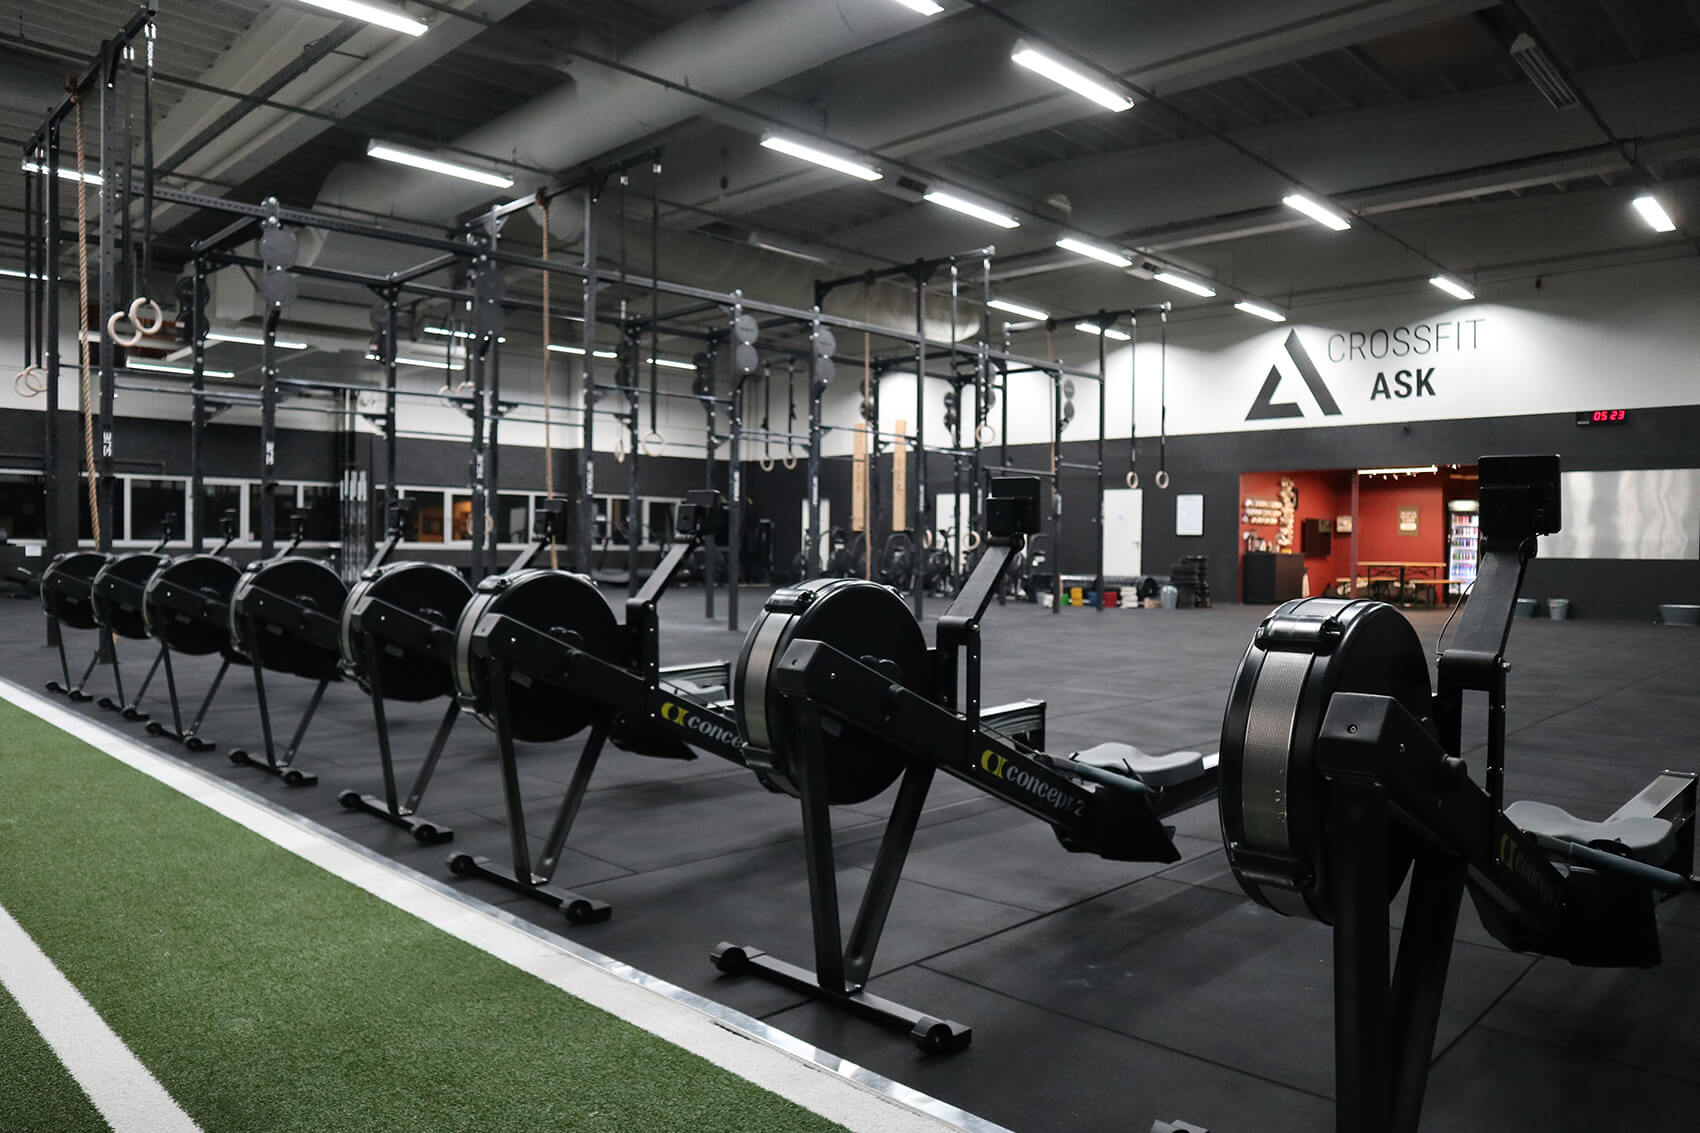 about-crossfit-crossfit-ask-crossfit-stavanger